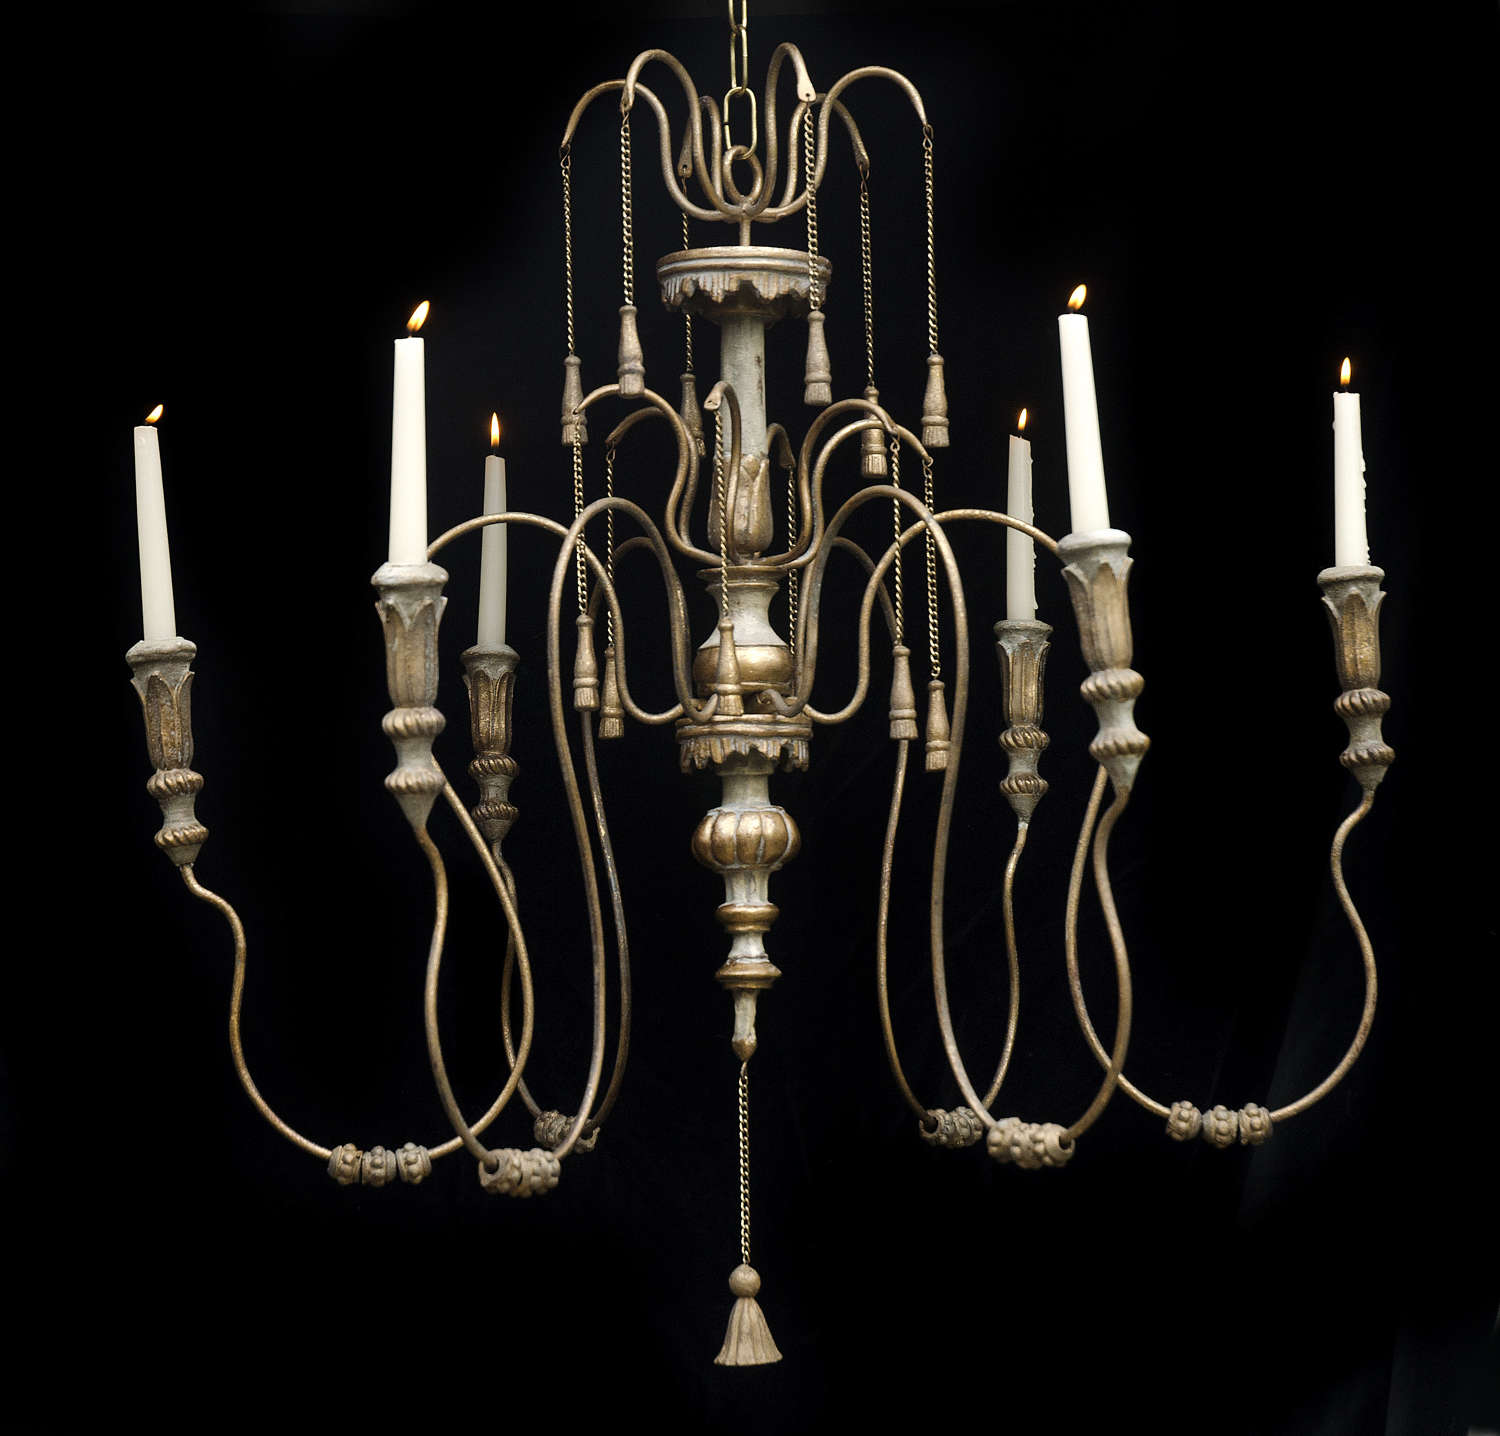 Large 6 arm vintage candelabra chandelier